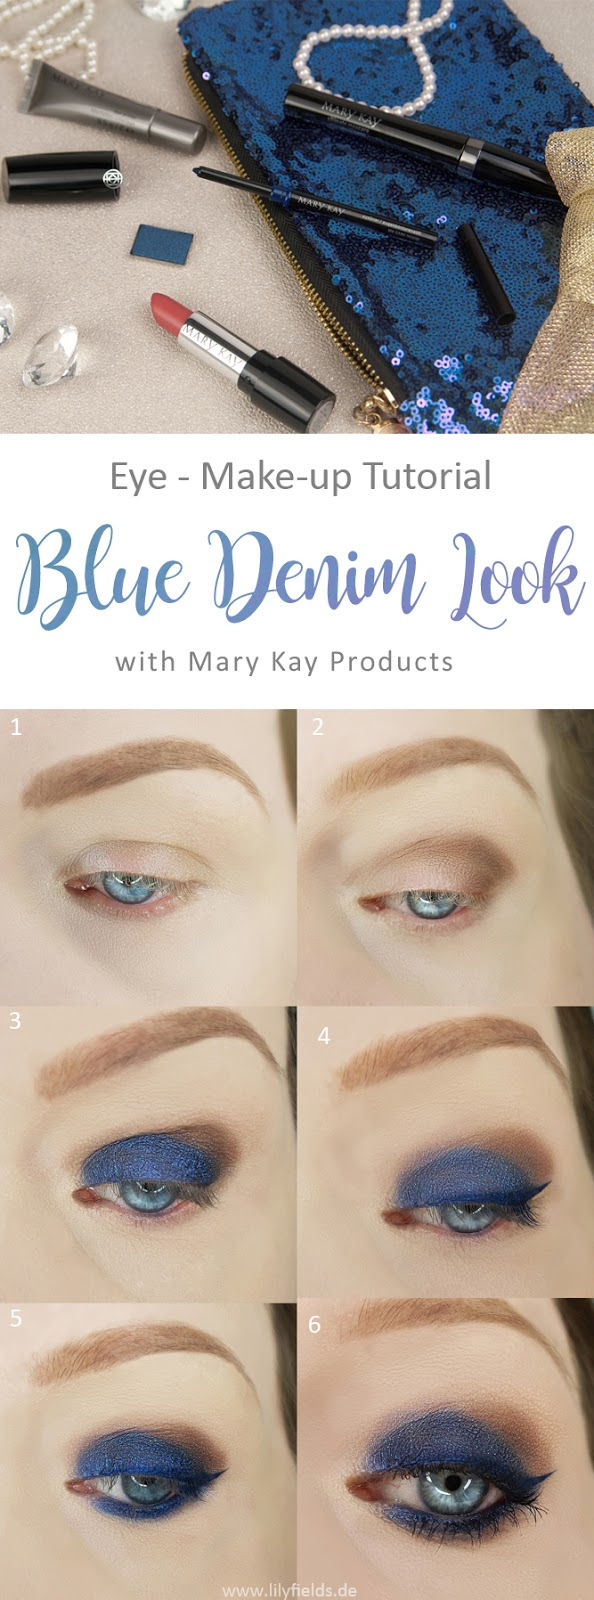 Mary Kay - Augen Make-up im Blue Denim-Look mit Step-by-Step Anleitung